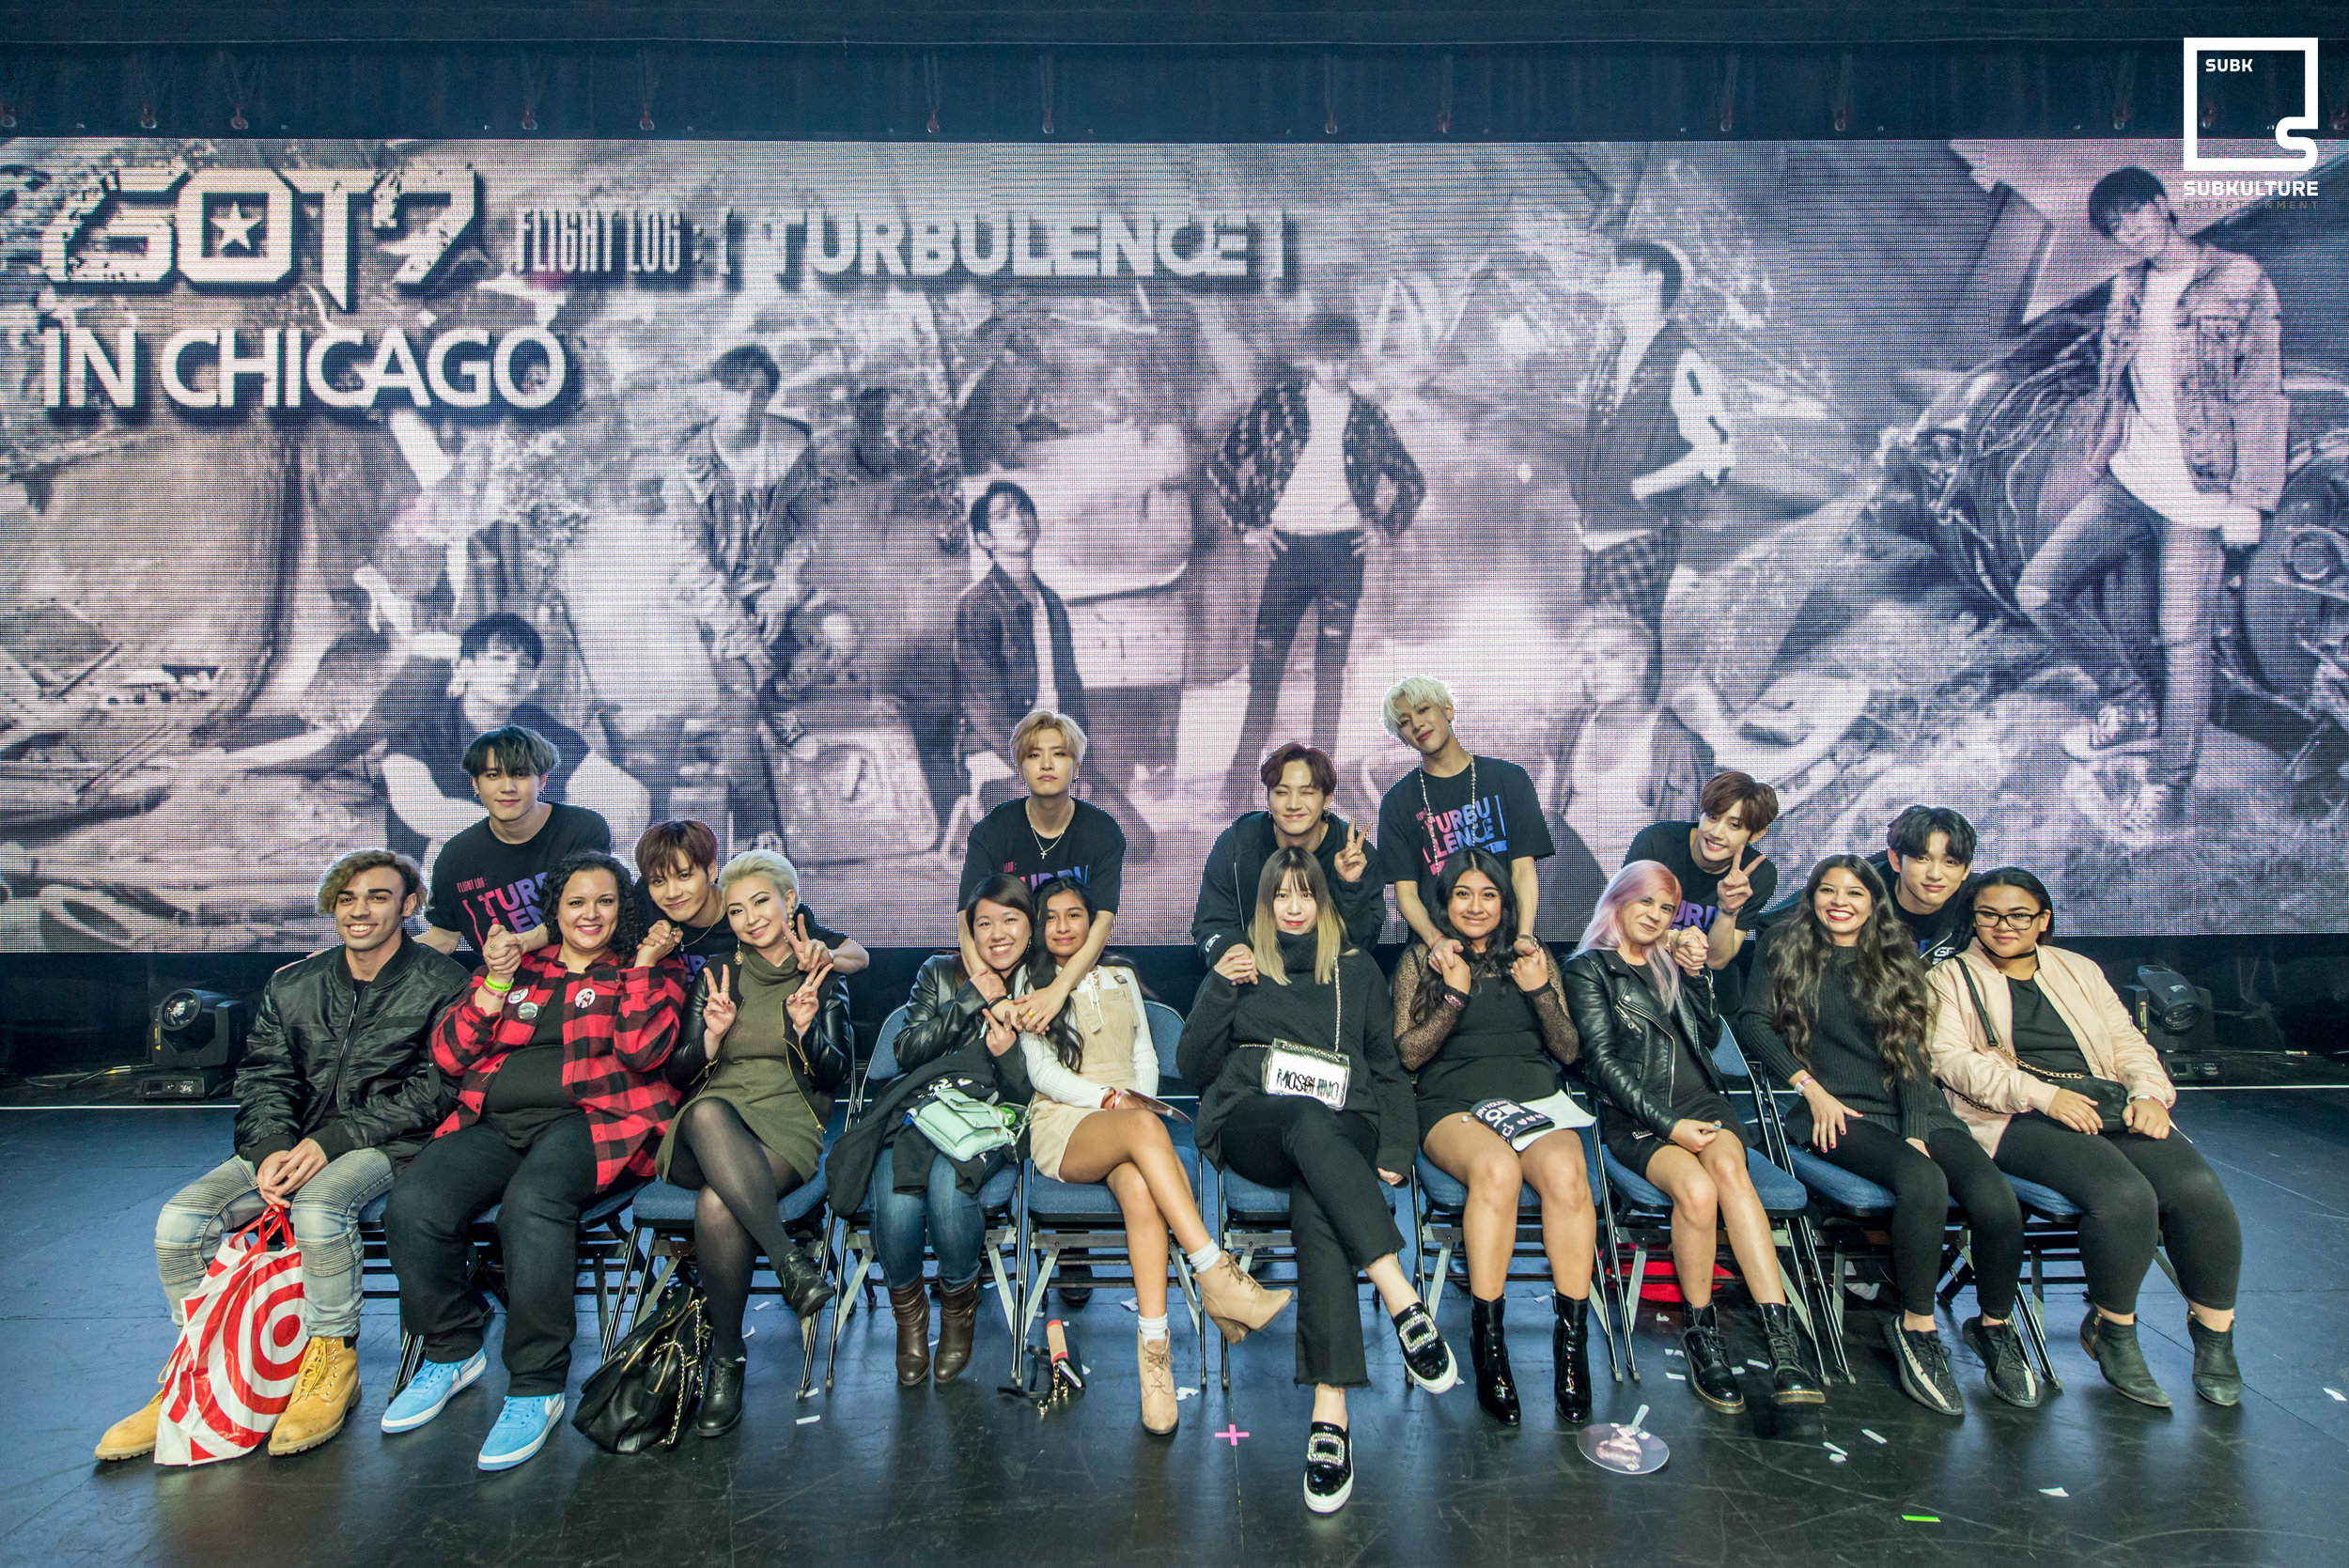 GOT7 Fan Photo Chicago Rosemont Theatre 2017 SubKulture Entertainment-3237 copy.jpg